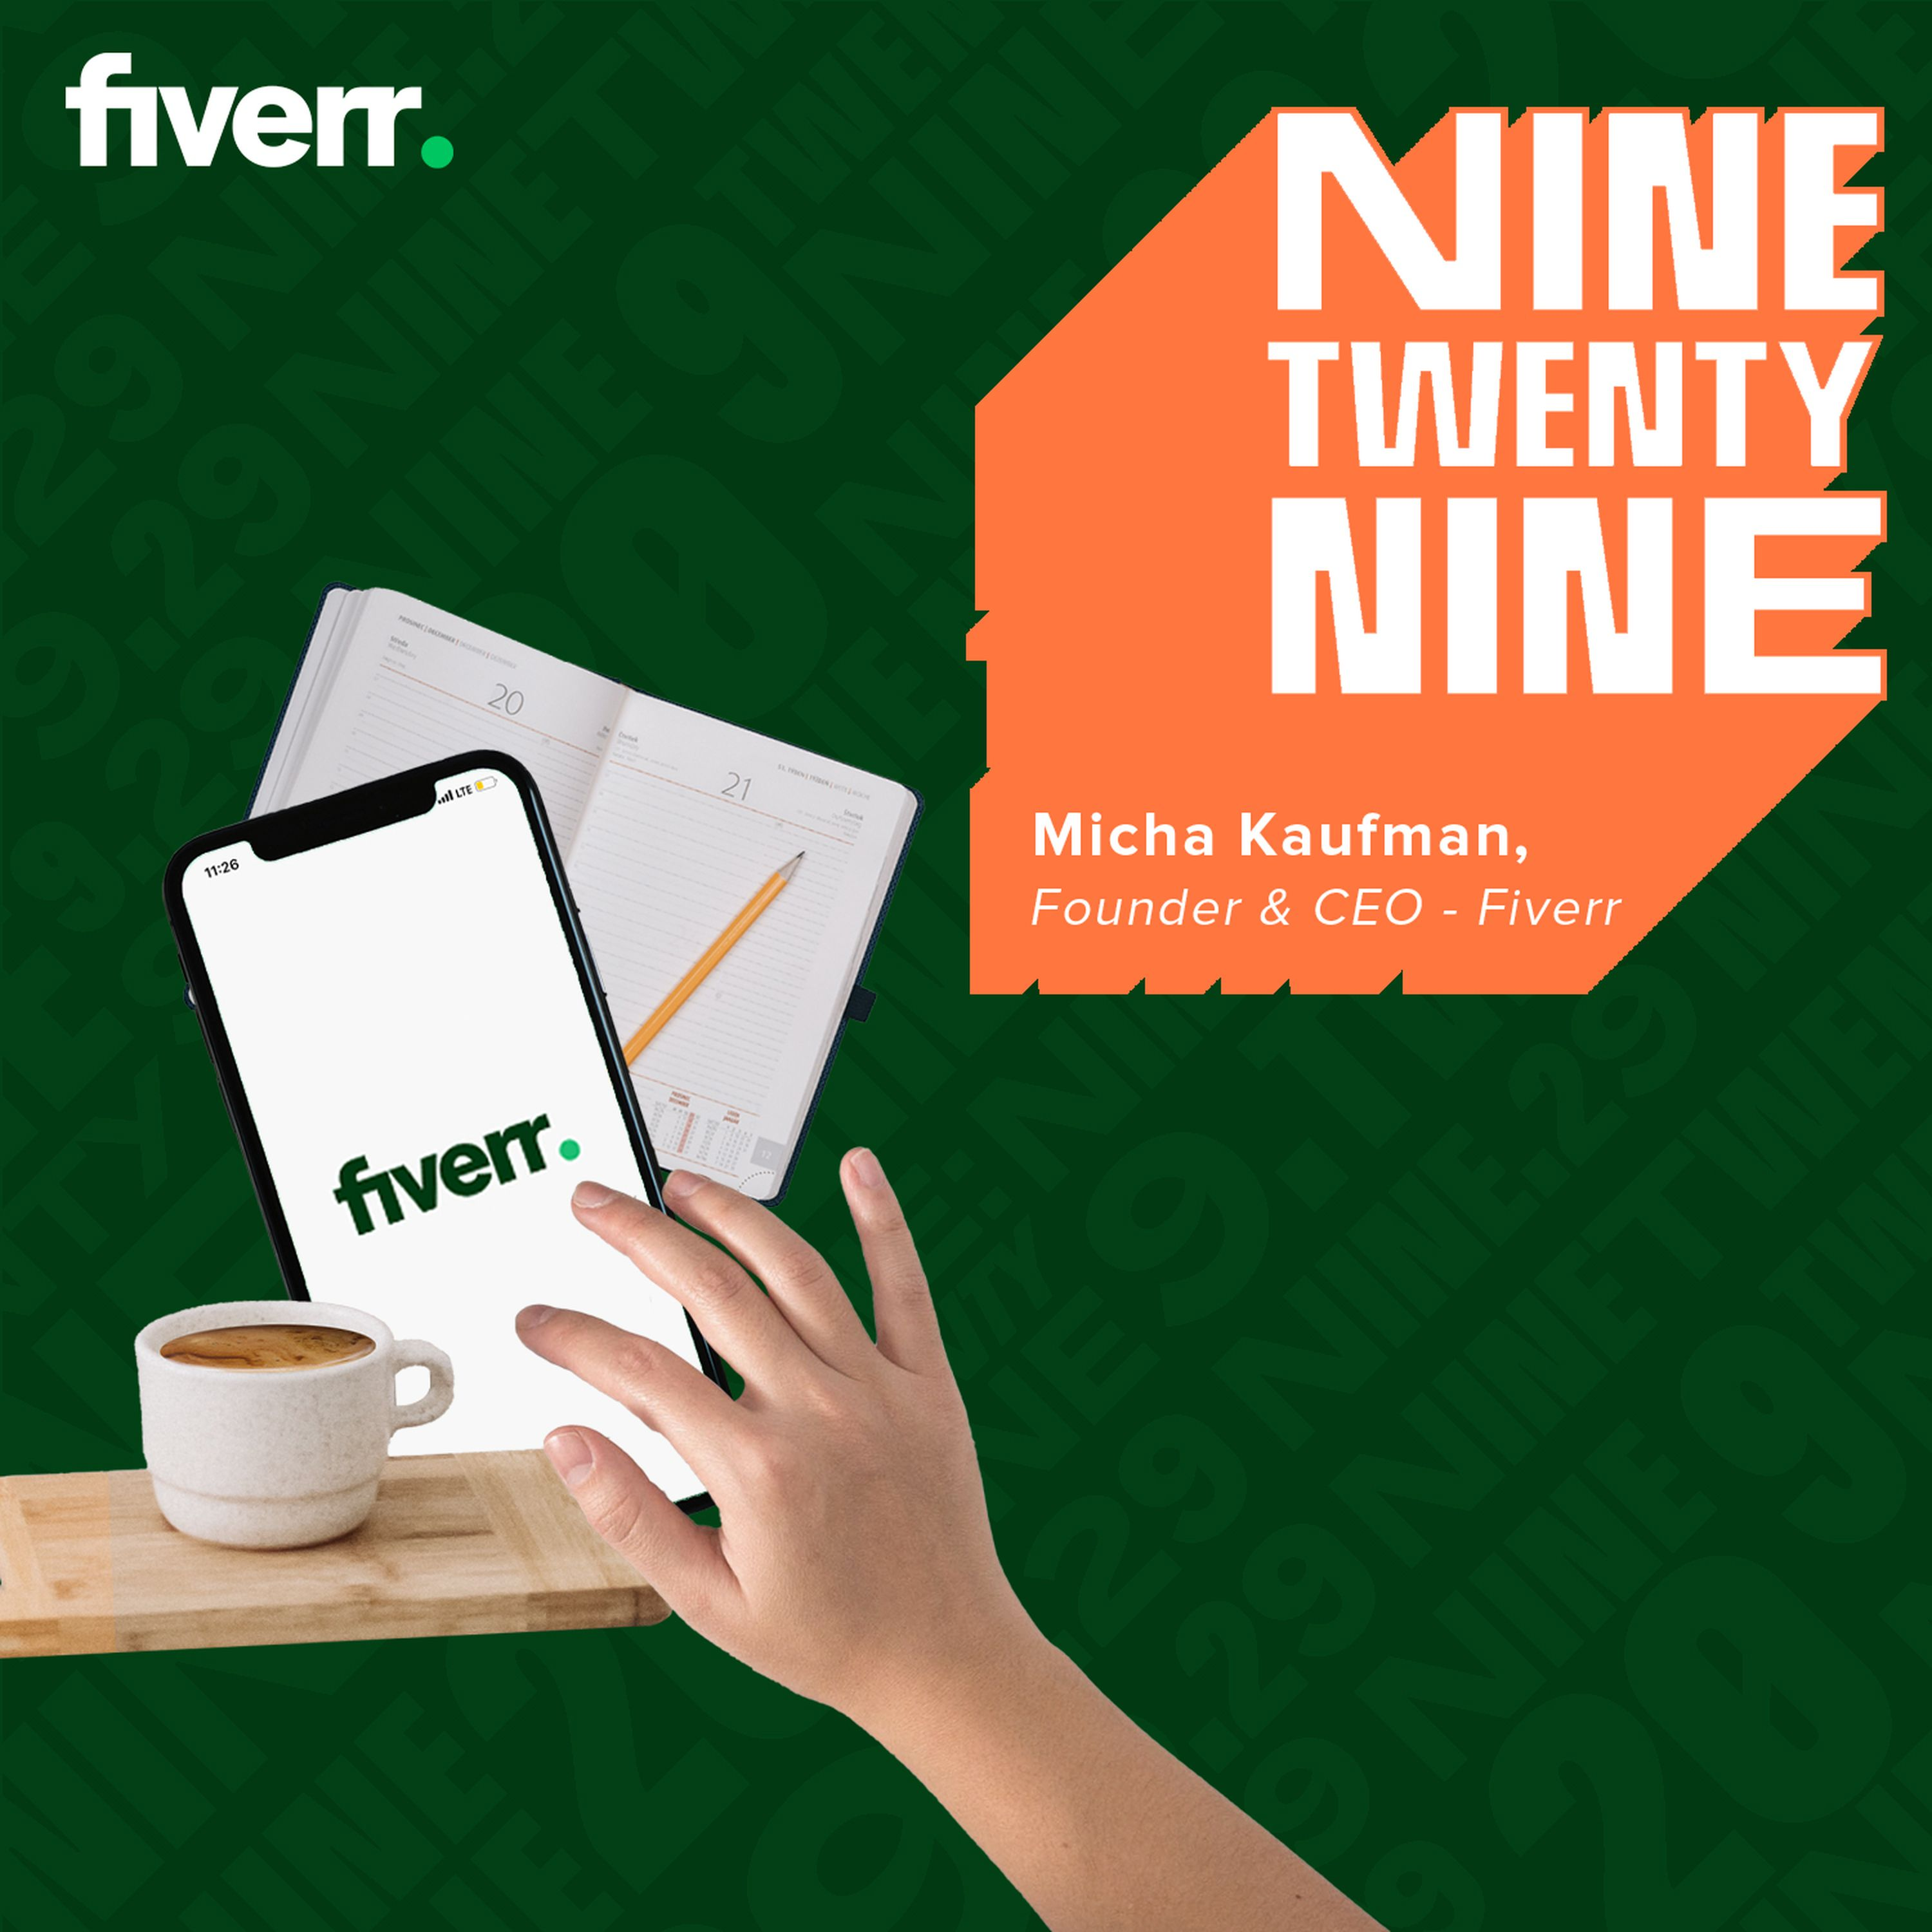 Fiverr's founder Micha Kaufman on why we should 'be obsessed with your customer'